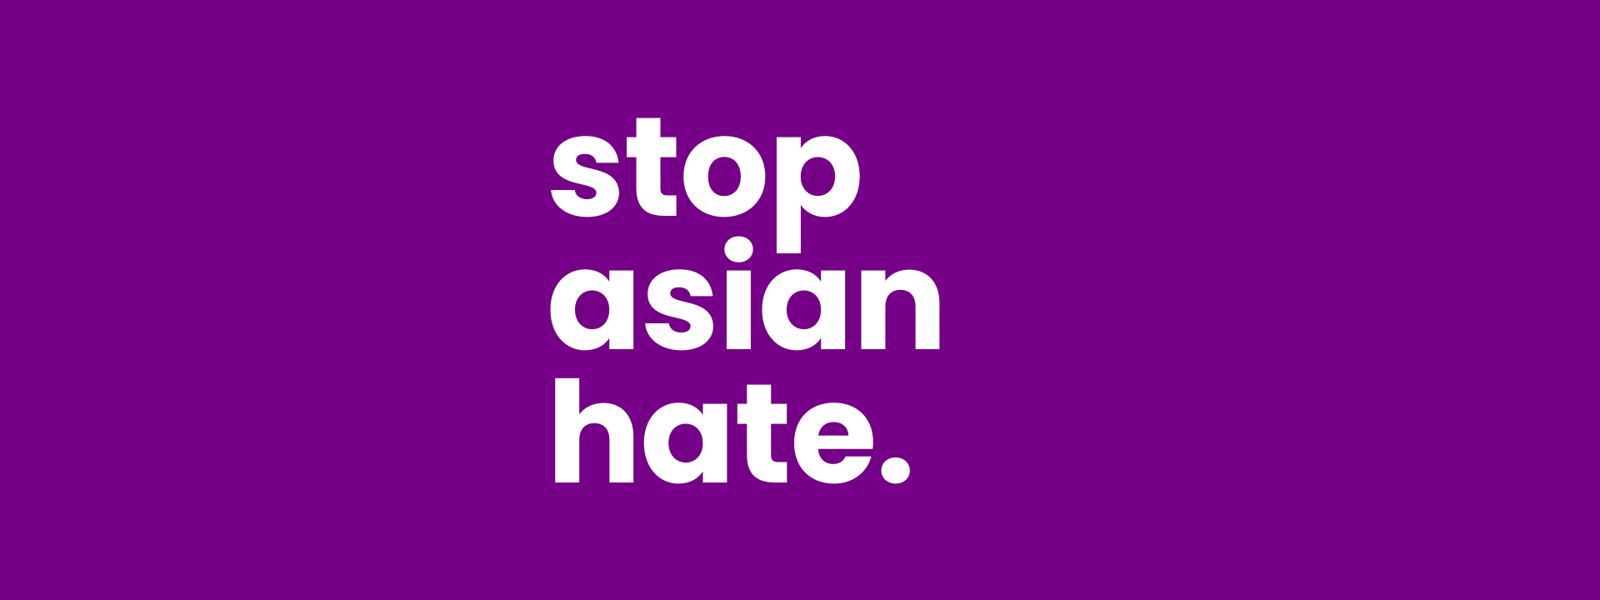 Stop asian hate.